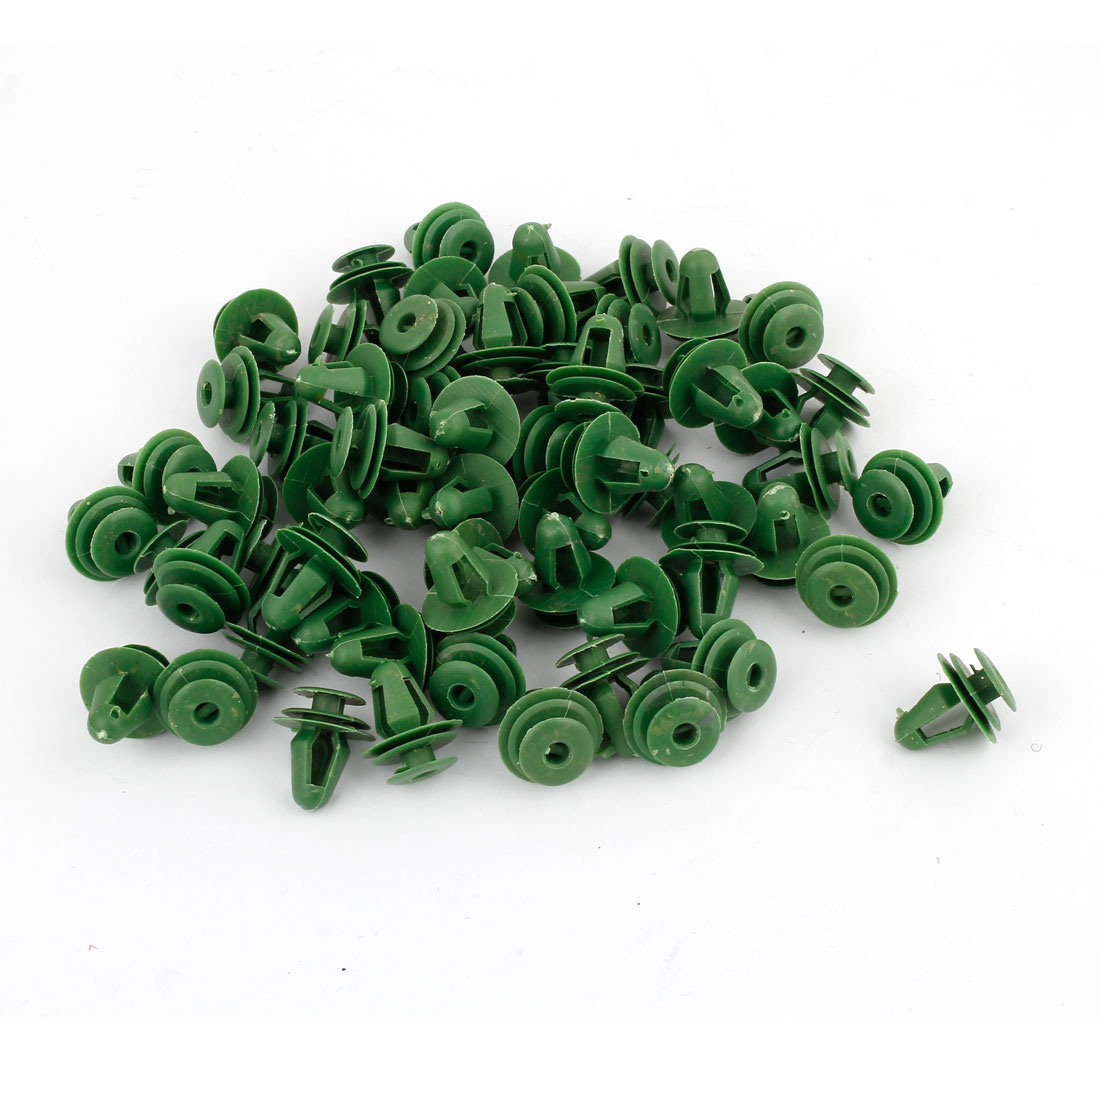 Unique Bargains 100 Pcs Green Plastic Push in Rivets Trim Clip Retainer for Car Auto Airplane